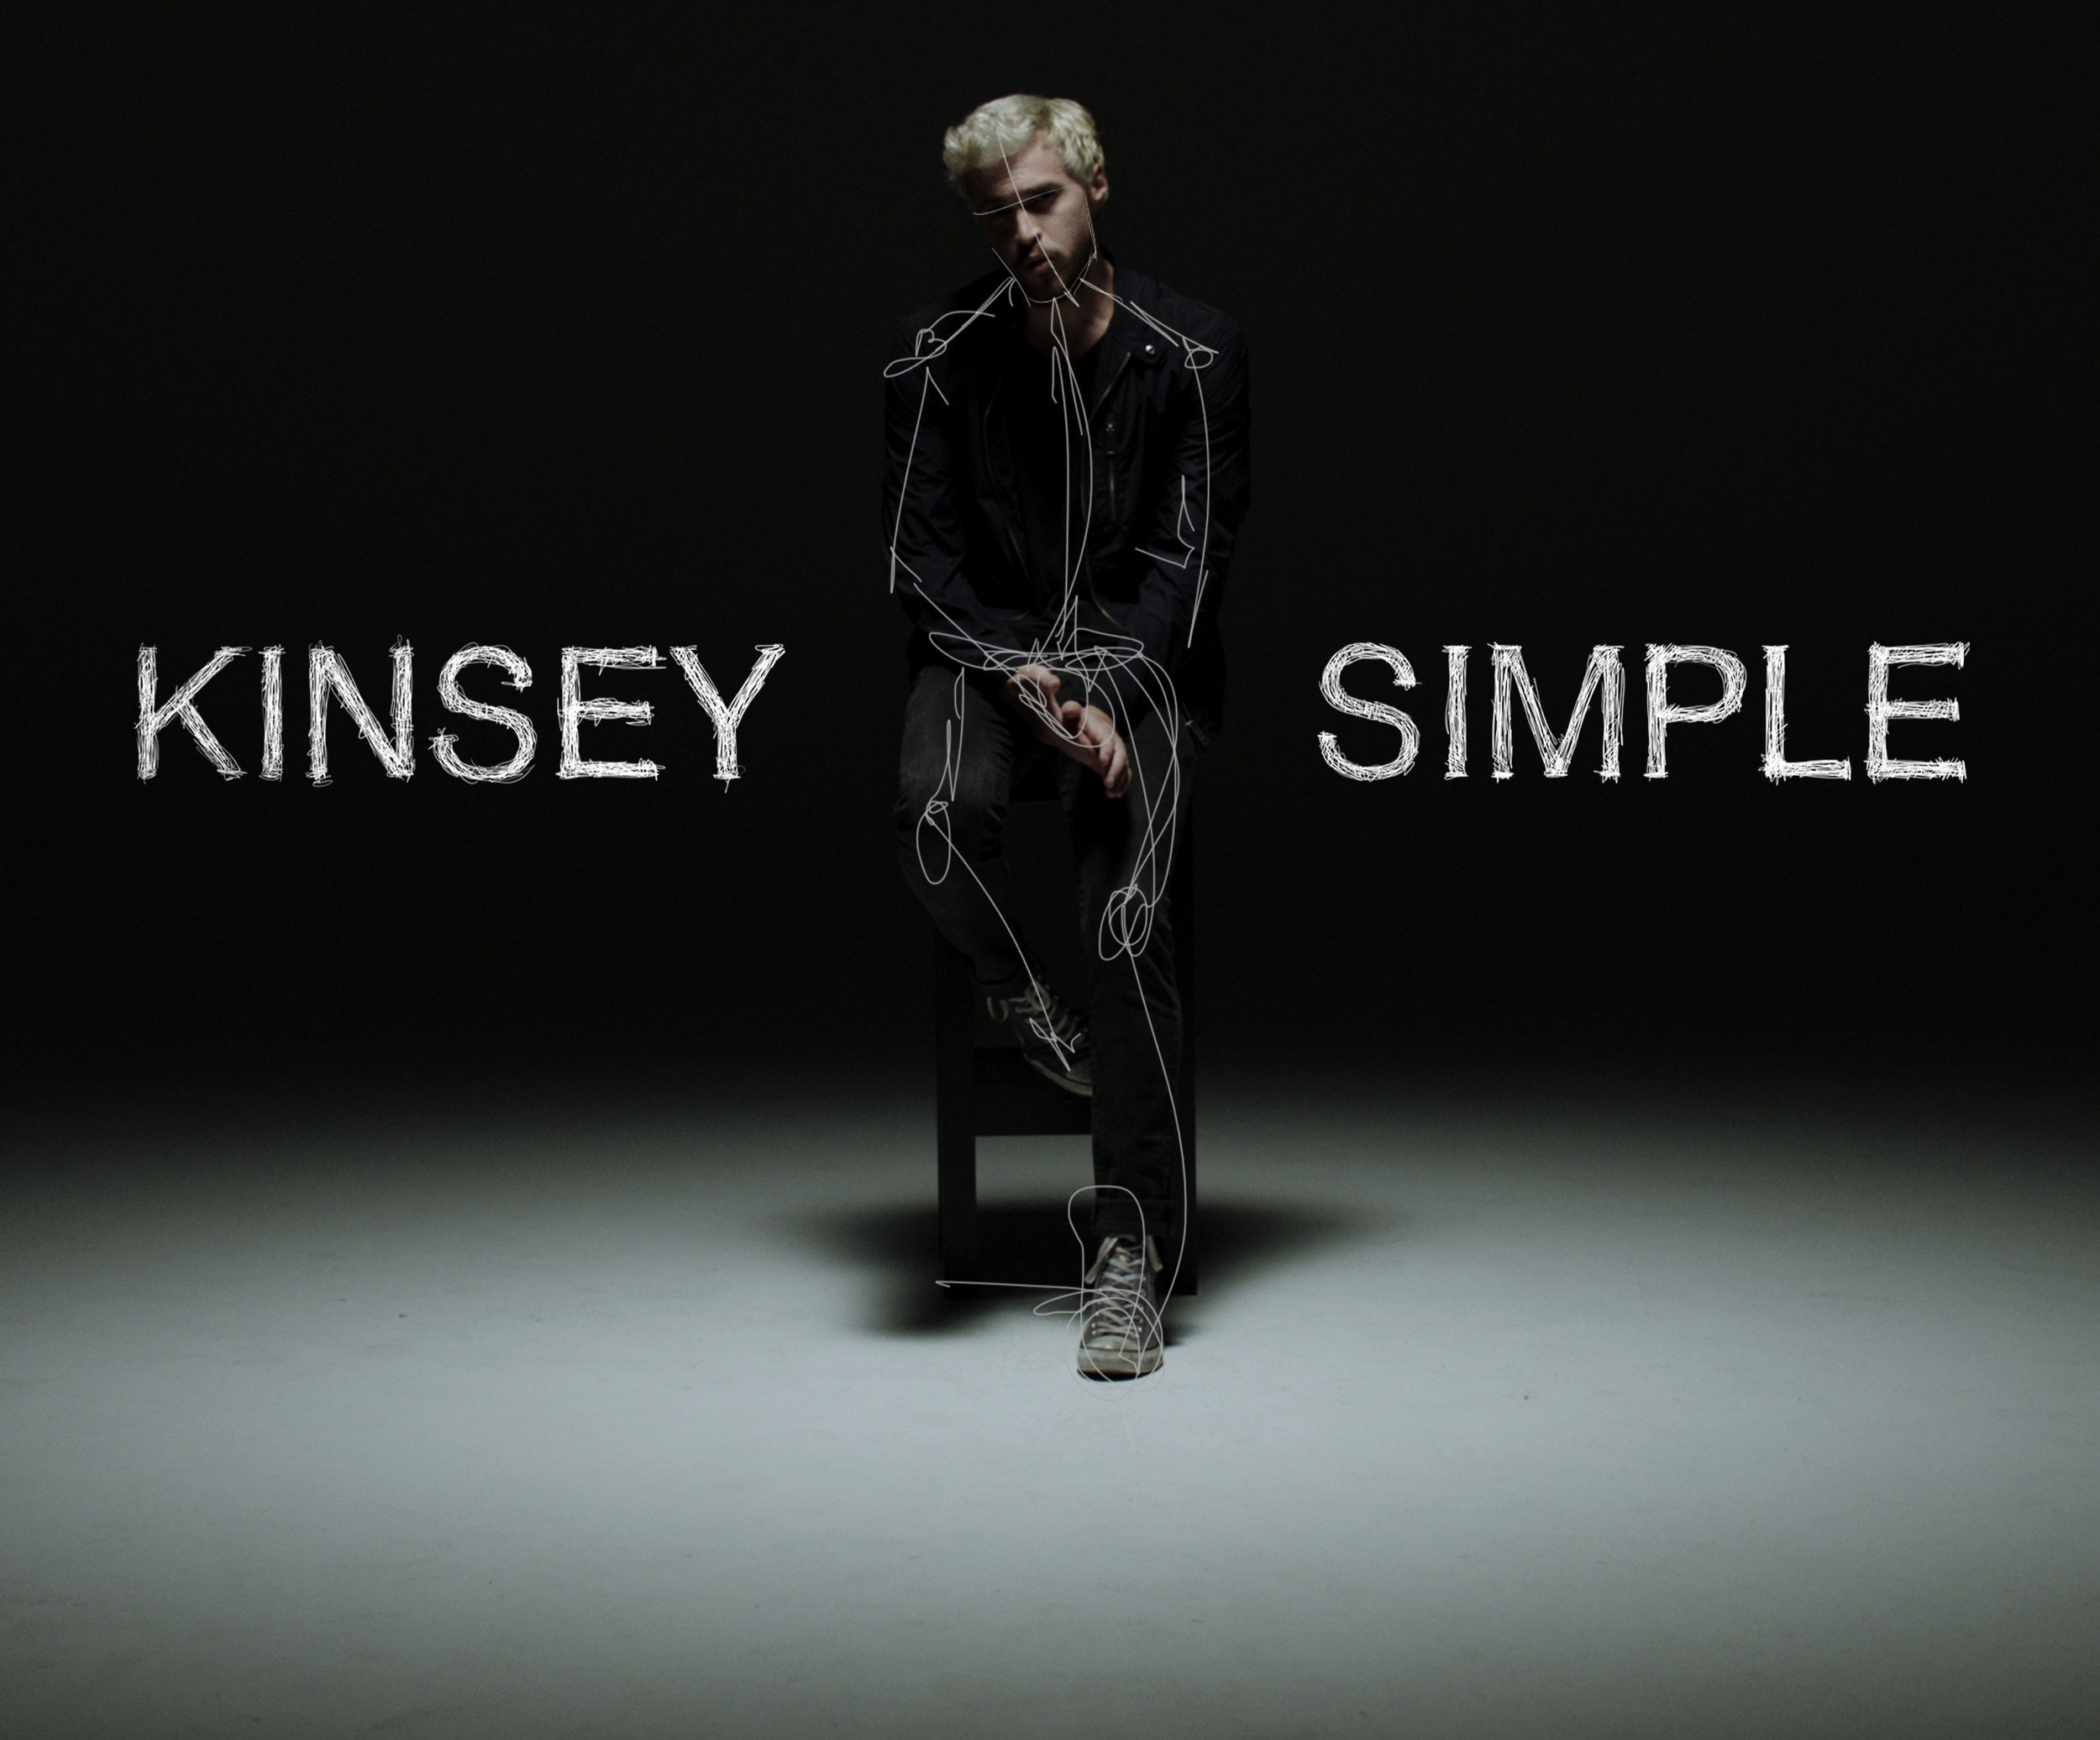 Kinsey_Simple_Single_3000.jpg